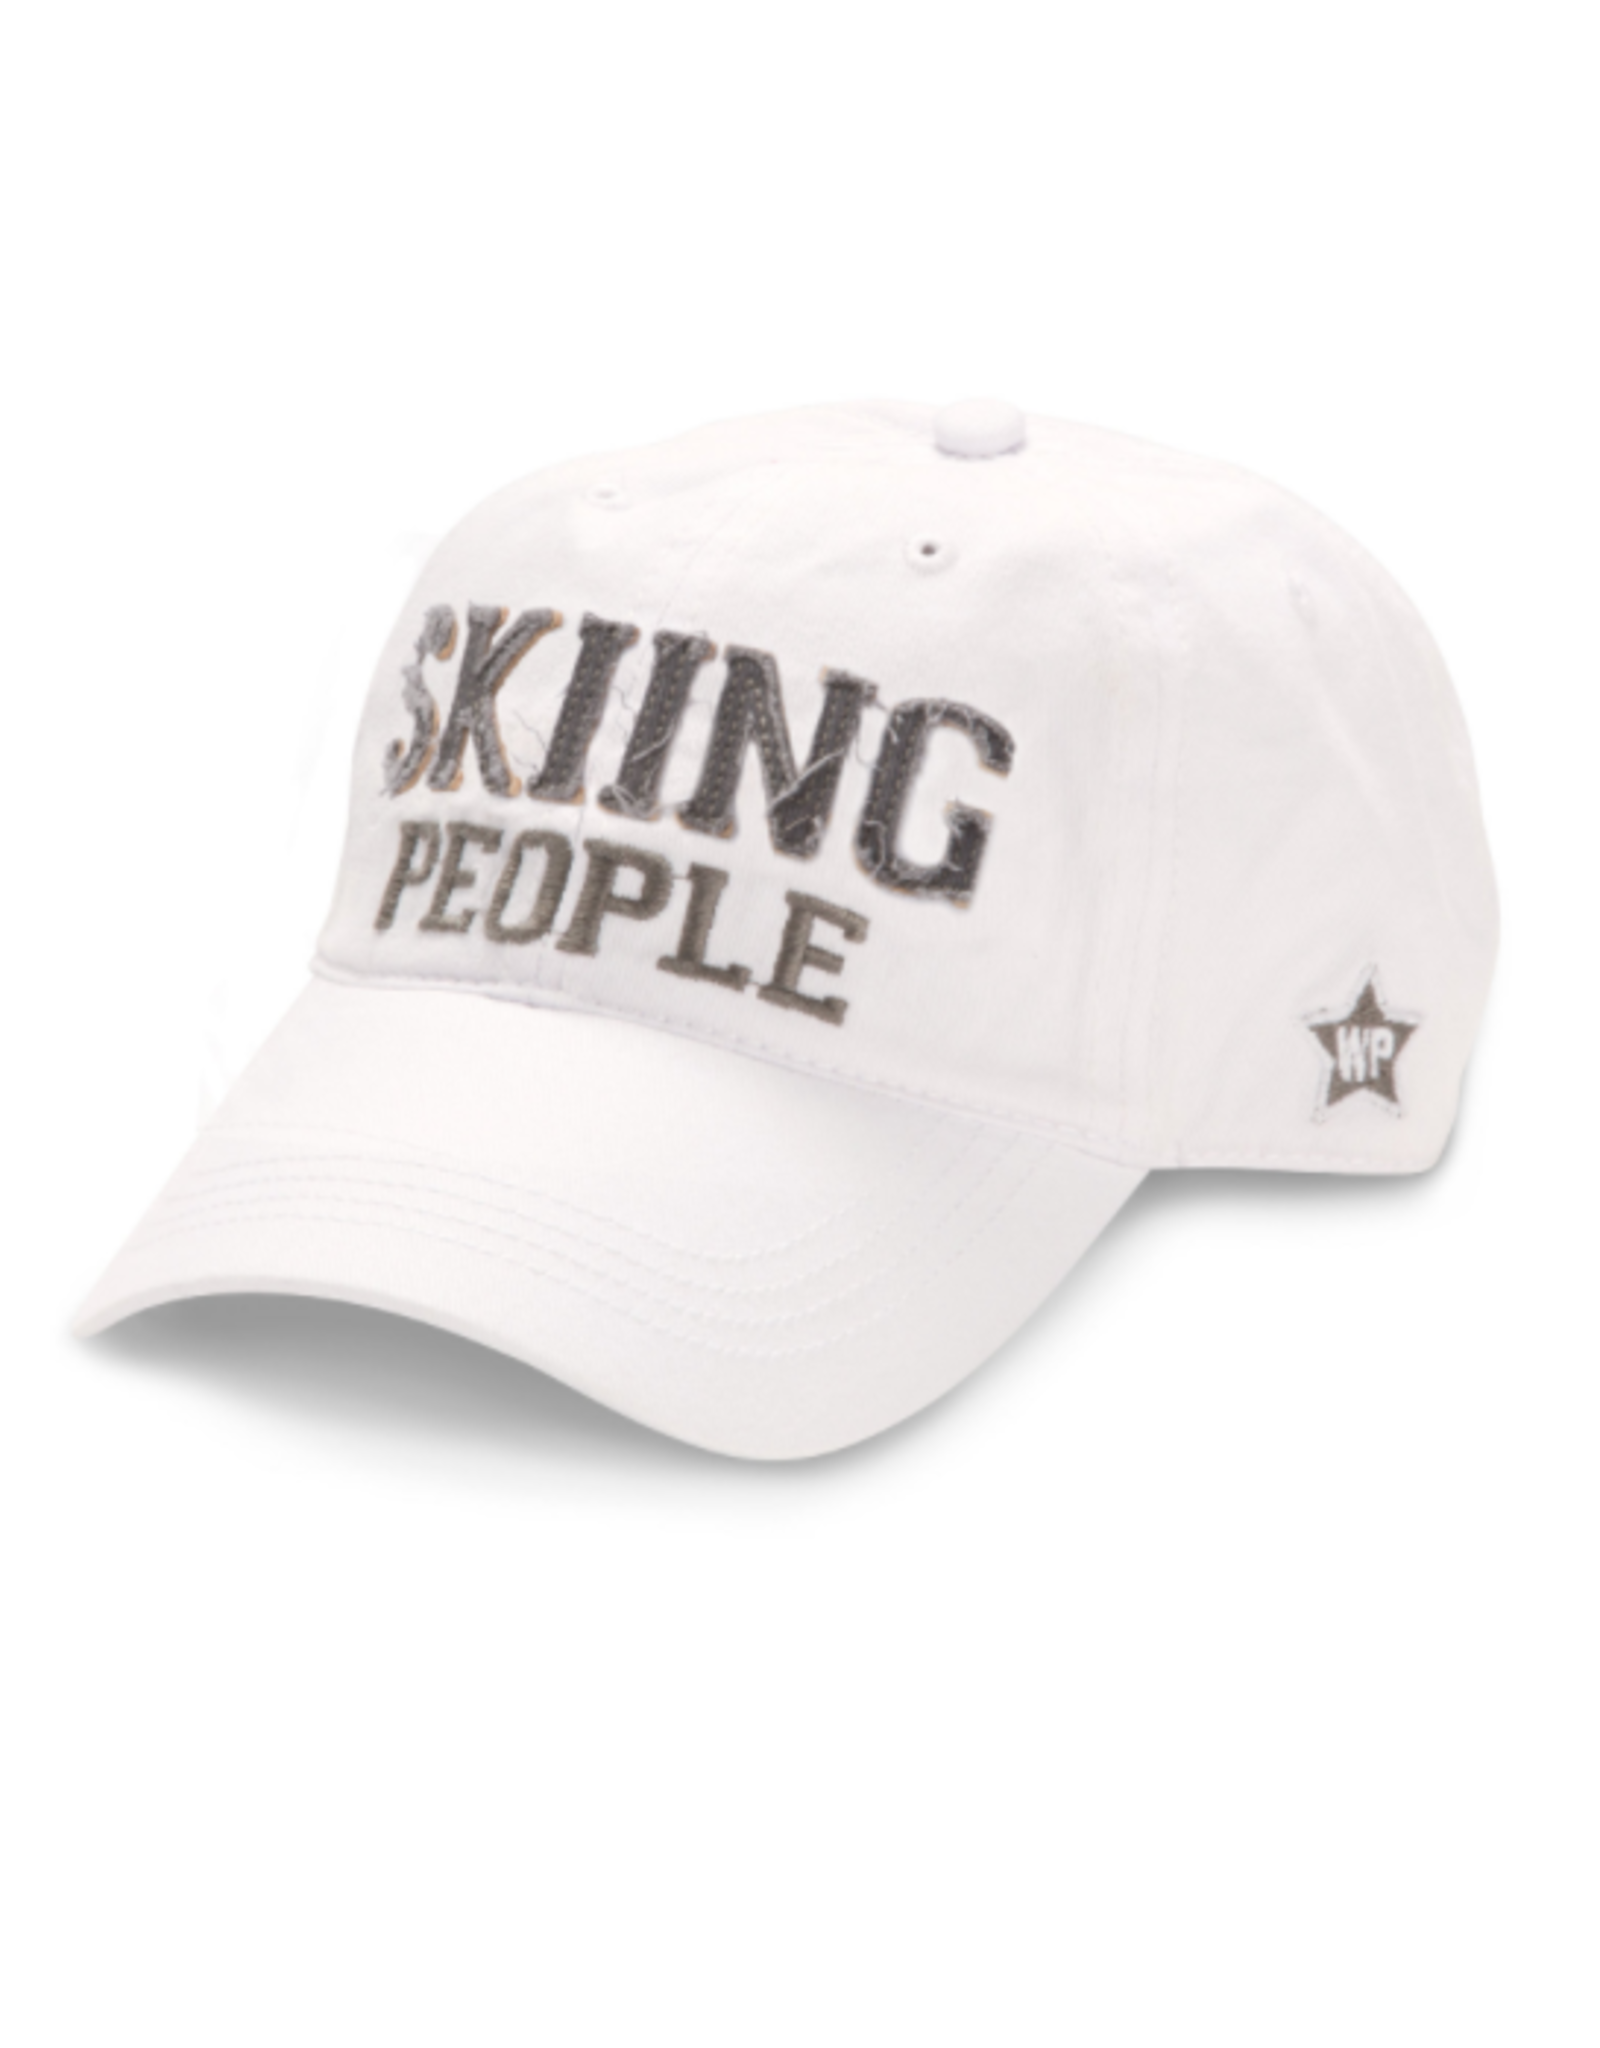 Skiing People Ball Hat, white